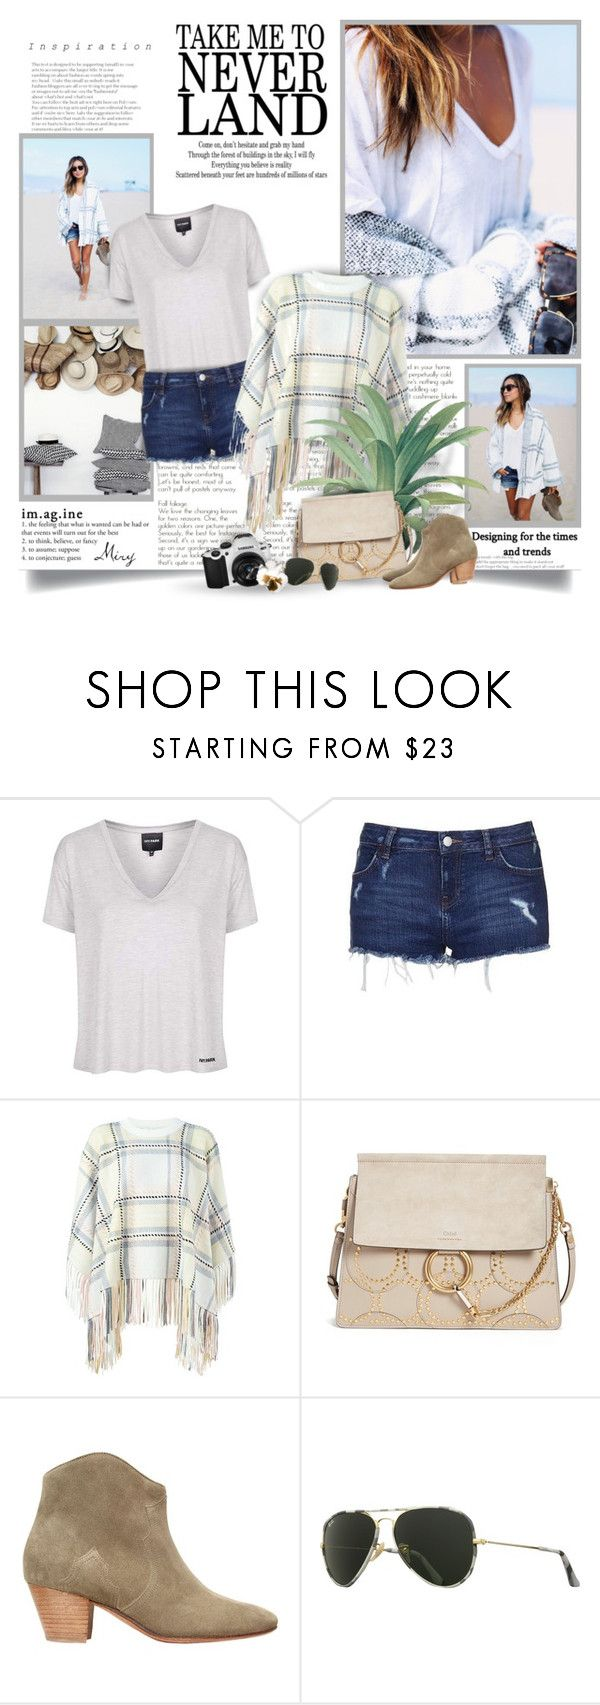 """""""Take Me To Never Land"""" by thewondersoffashion ❤ liked on Polyvore featuring Topshop, Chloé, Isabel Marant, Samsung, Ray-Ban, BloggerStyle, topshop, isabelmarant, chloe and sincerelyjules"""